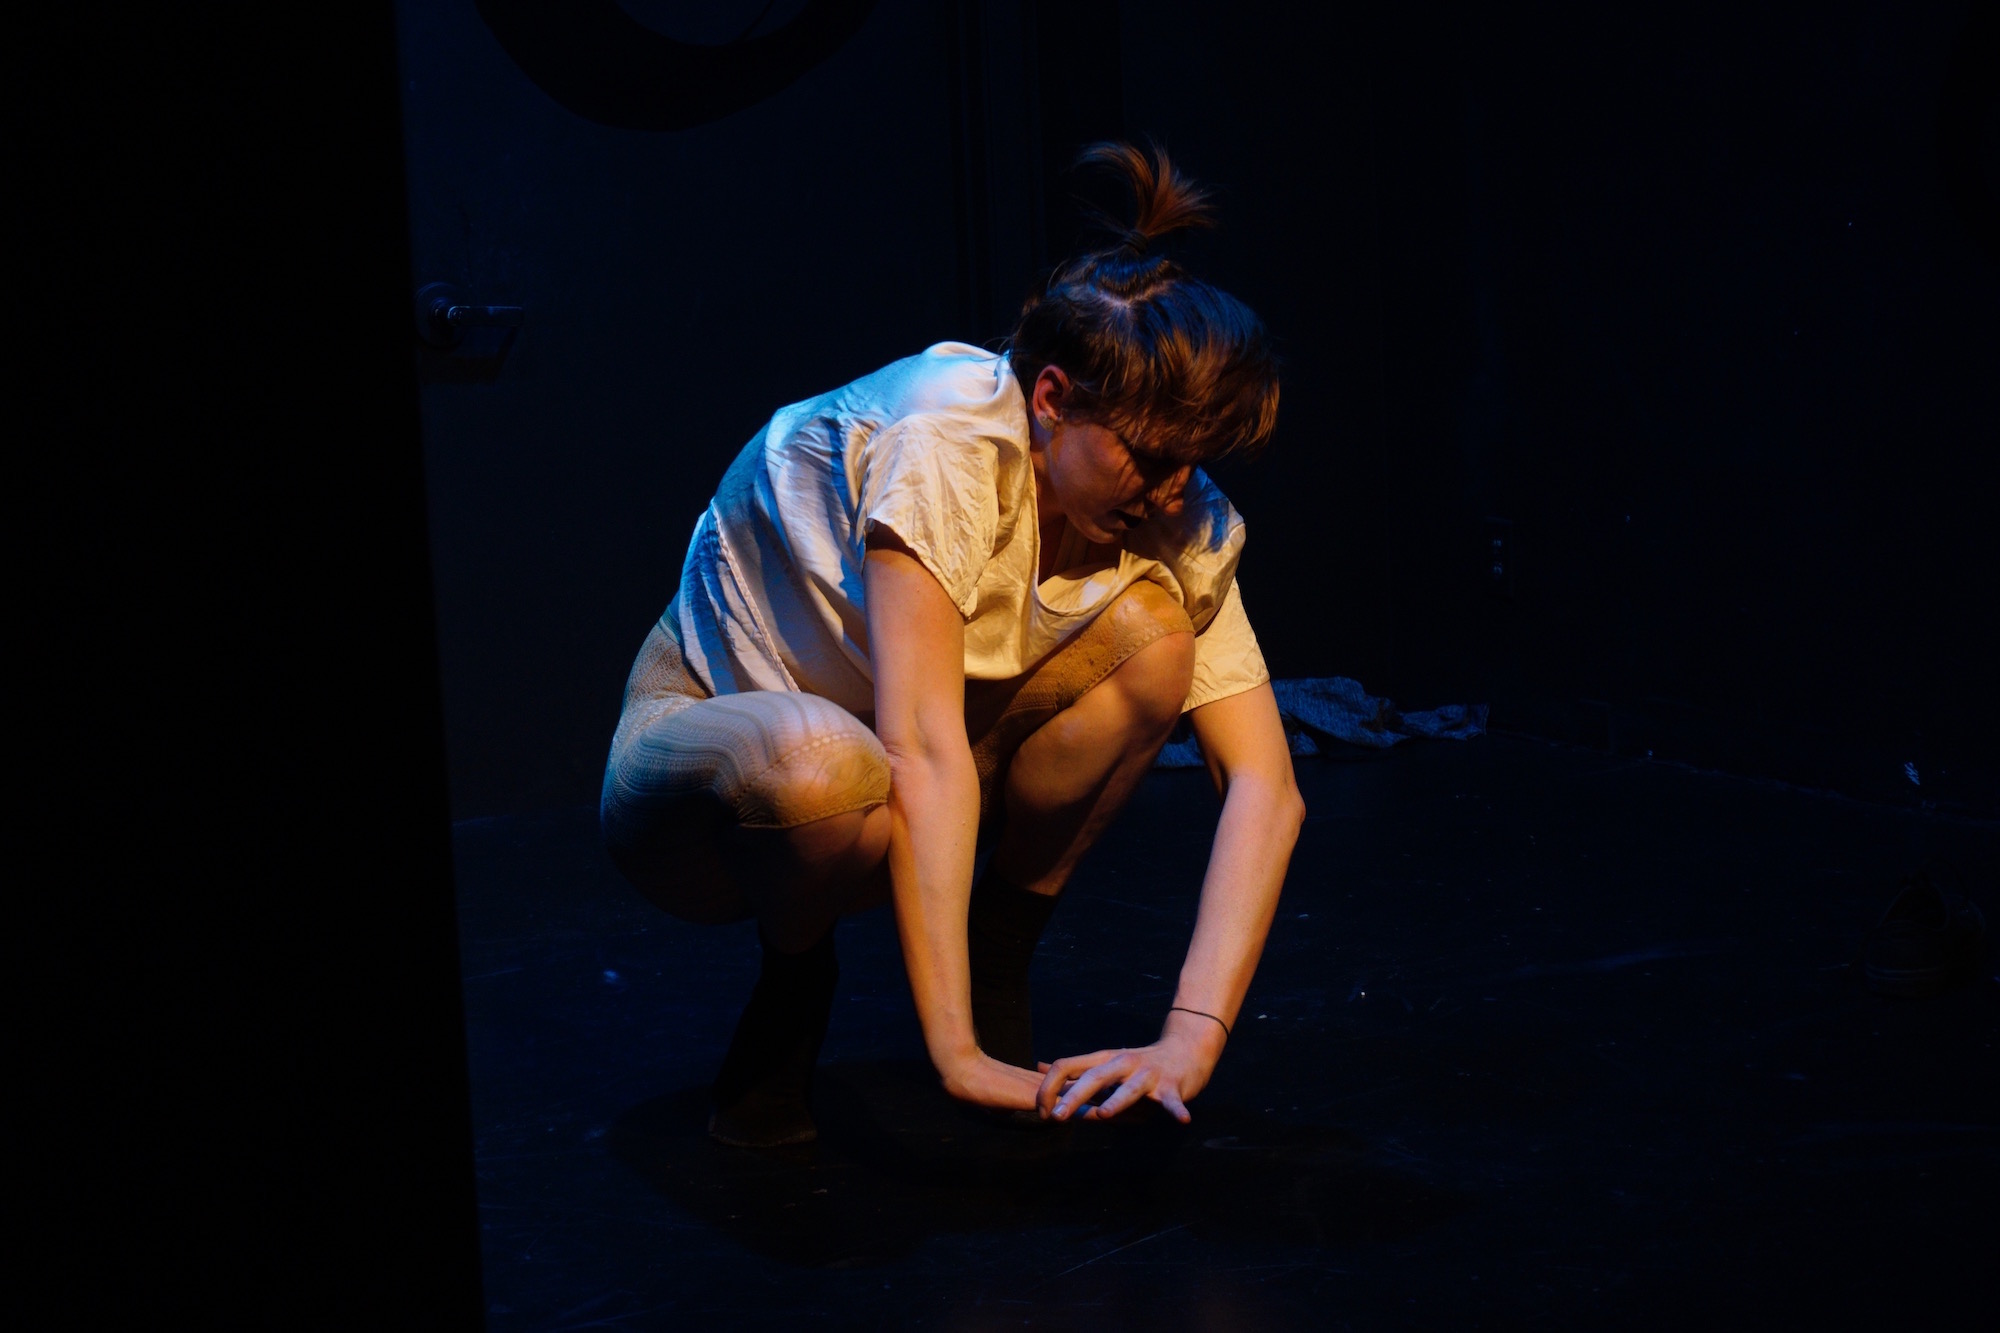 Fenner, a non-binary performer wearing a loose white shirt and tan leggings, crouches down onstage in a pool of light.